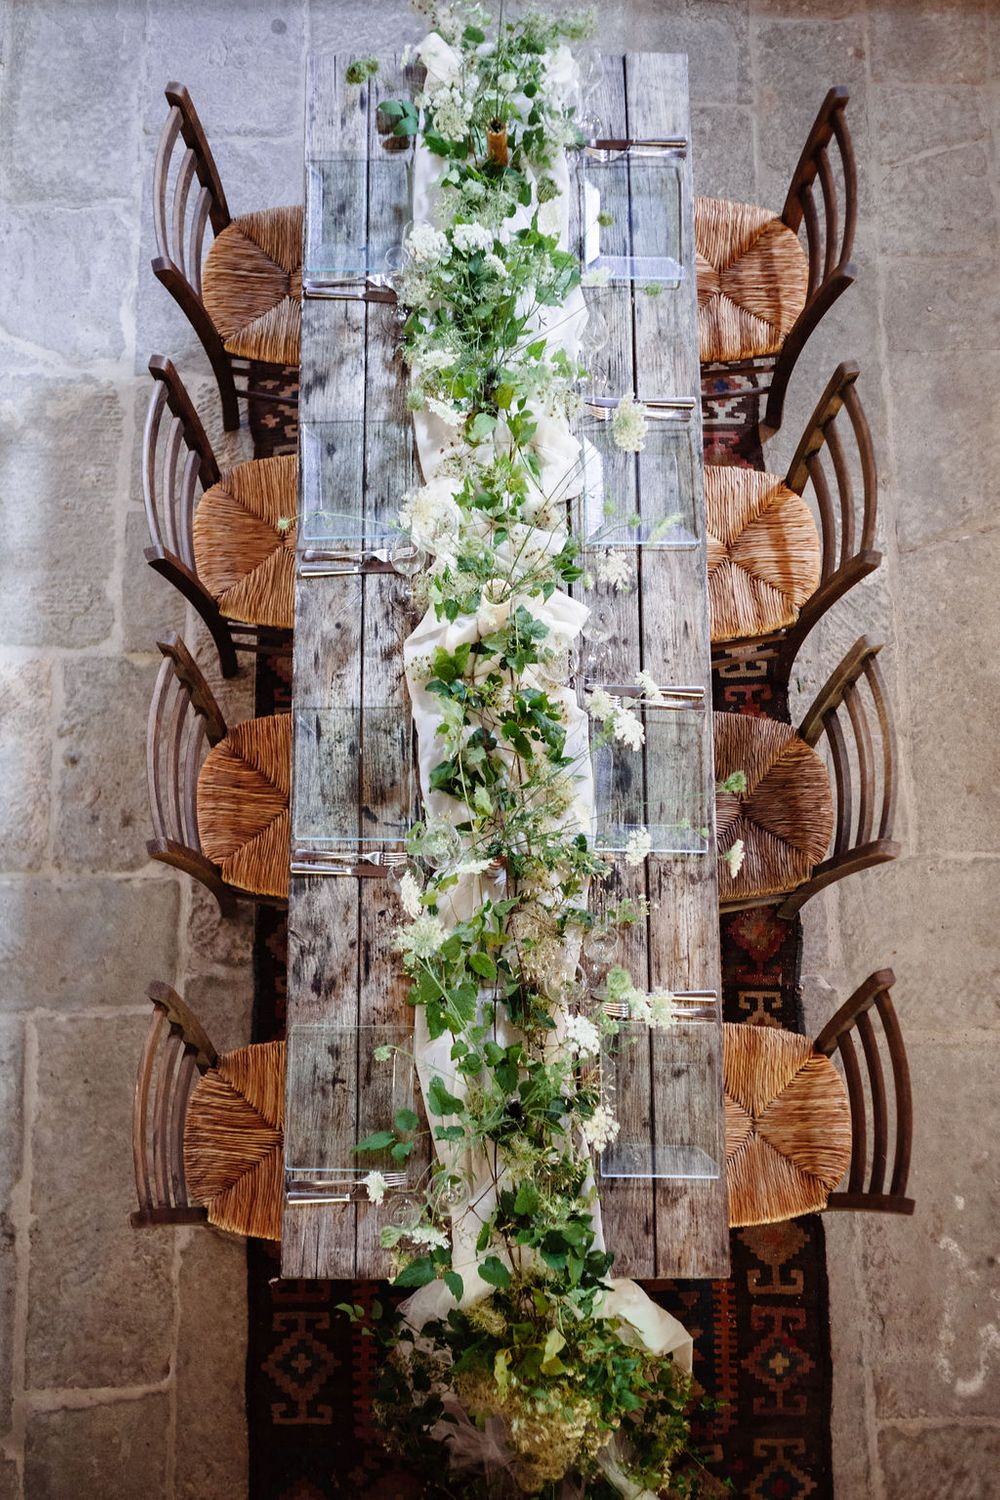 modern rustic table setting and floral arrangements for your wedding in Tuscany